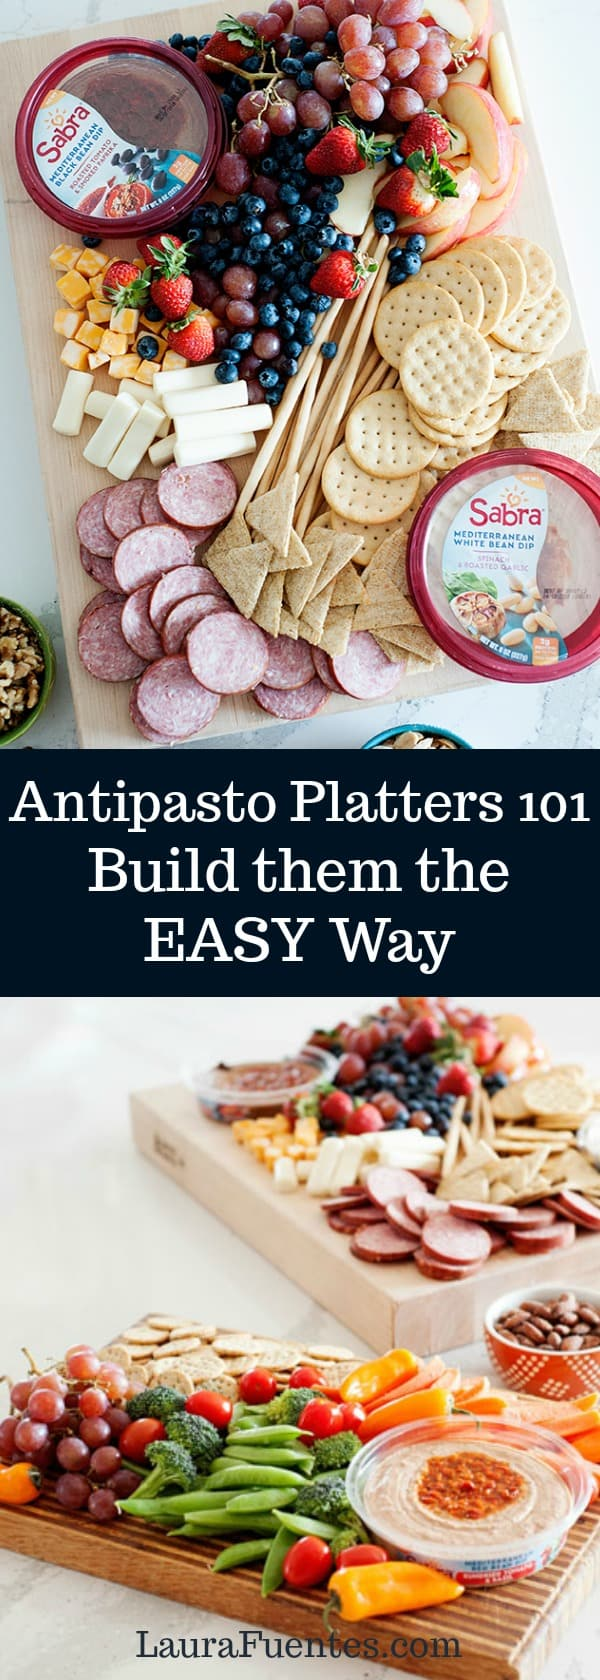 Wondering what goes into an antipasto platter? Check out this step-by-step post.